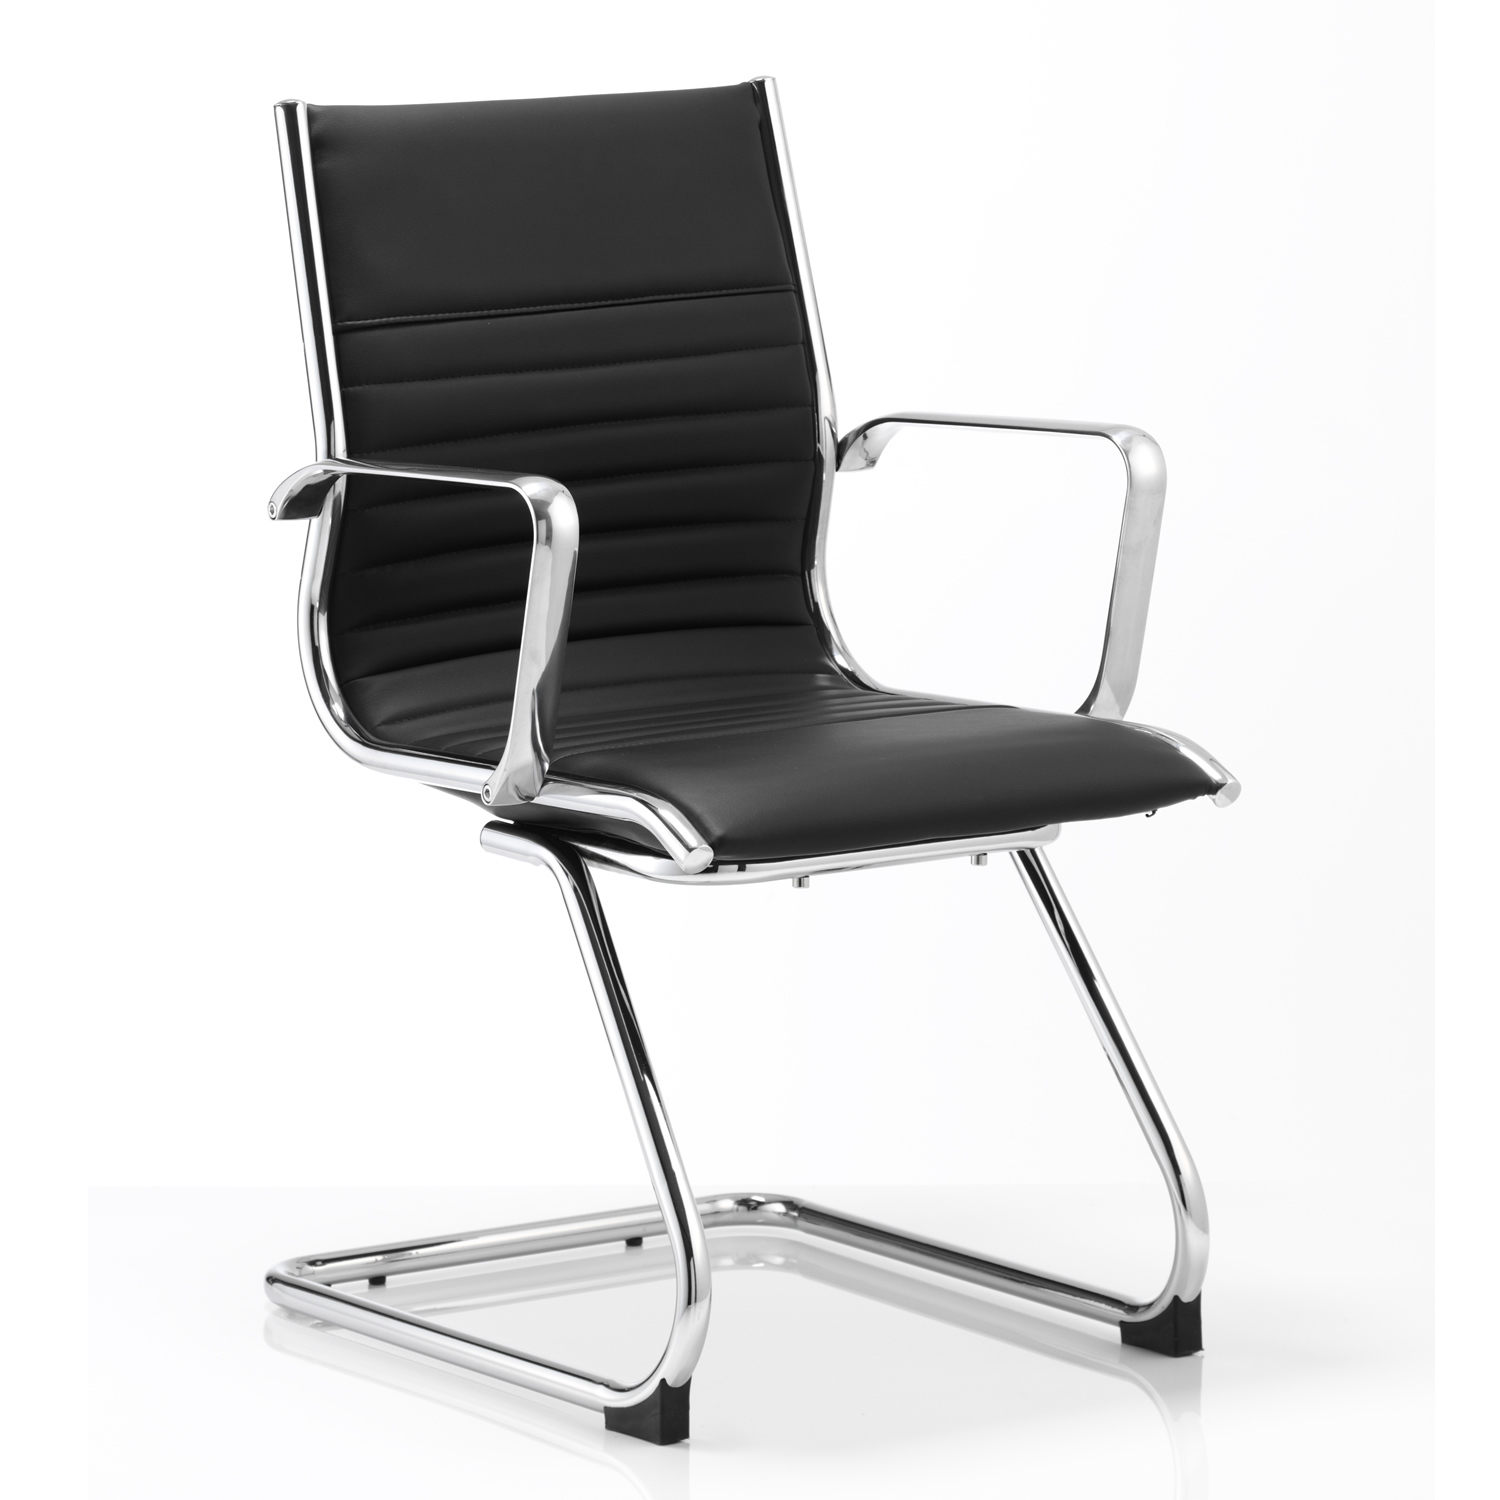 chairs for office conference chairs BQFZBSN